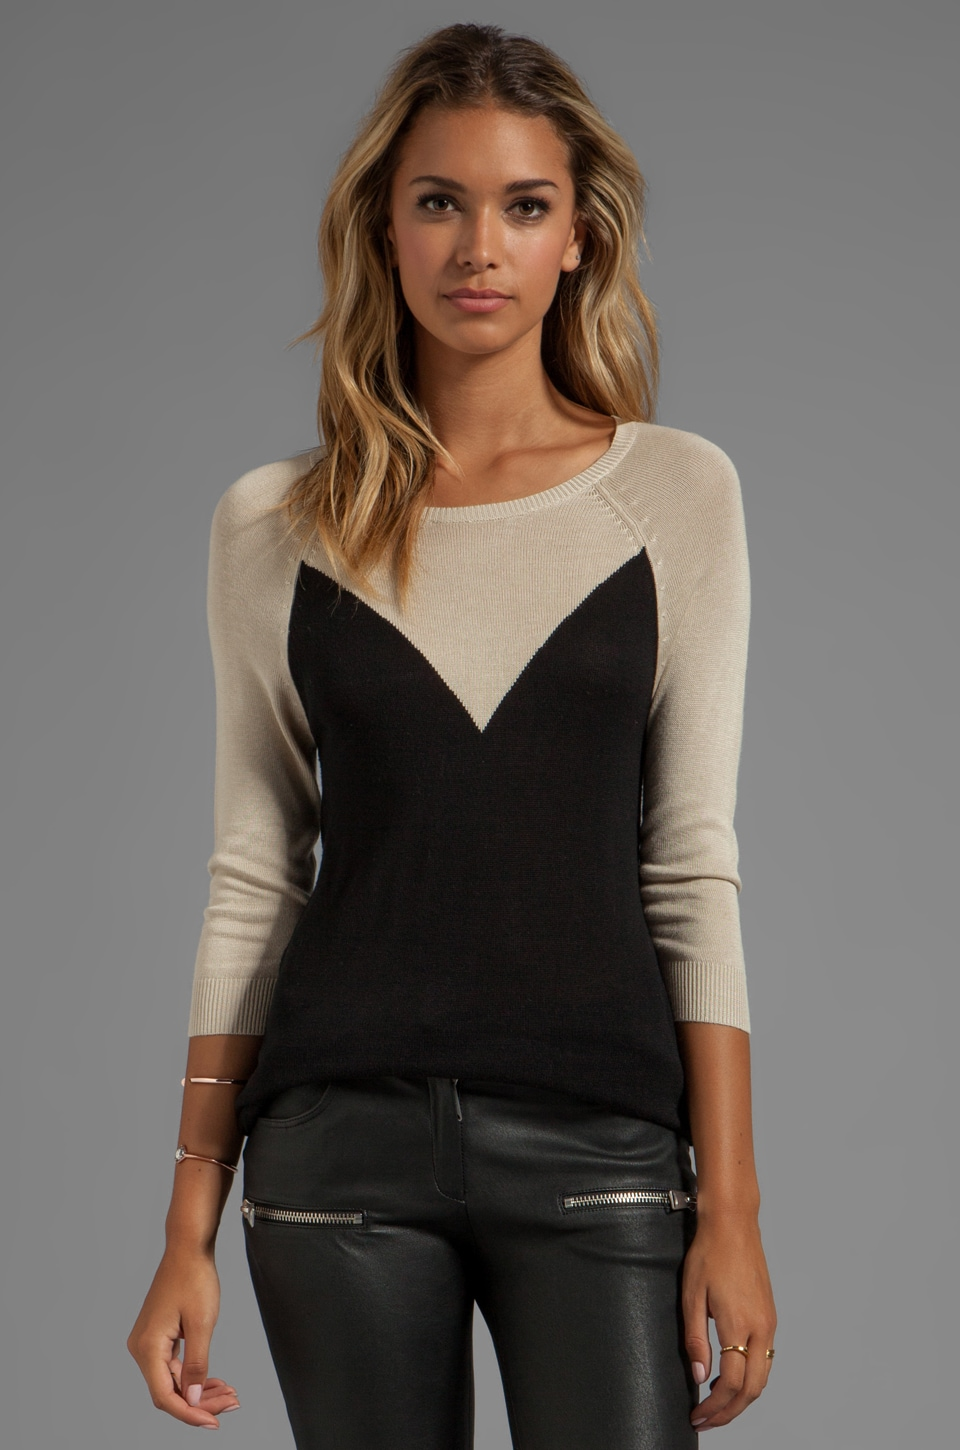 LA Made 3/4 Sleeve Crew Neck Tunic in Black/Cream